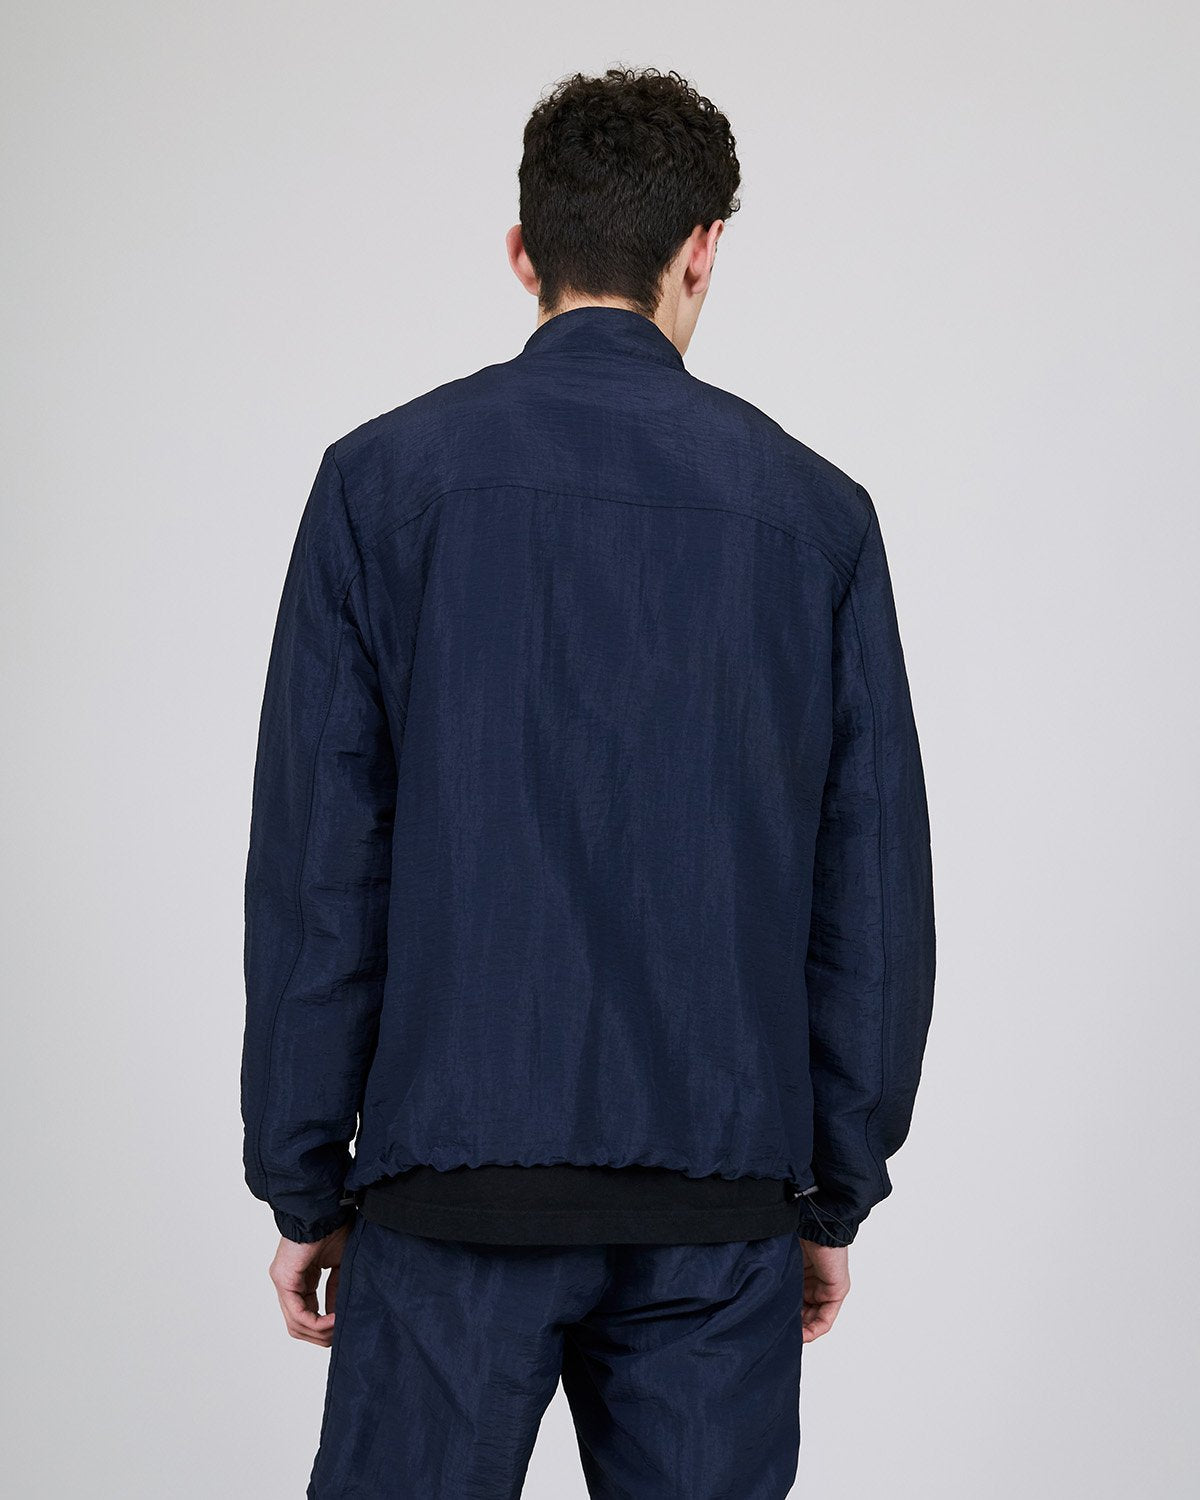 ØLÅF CCC Track Jacket Blue, Nylon fabric, Front zipper, Two side pockets, Artwork on left and right arm, Made in Portugal